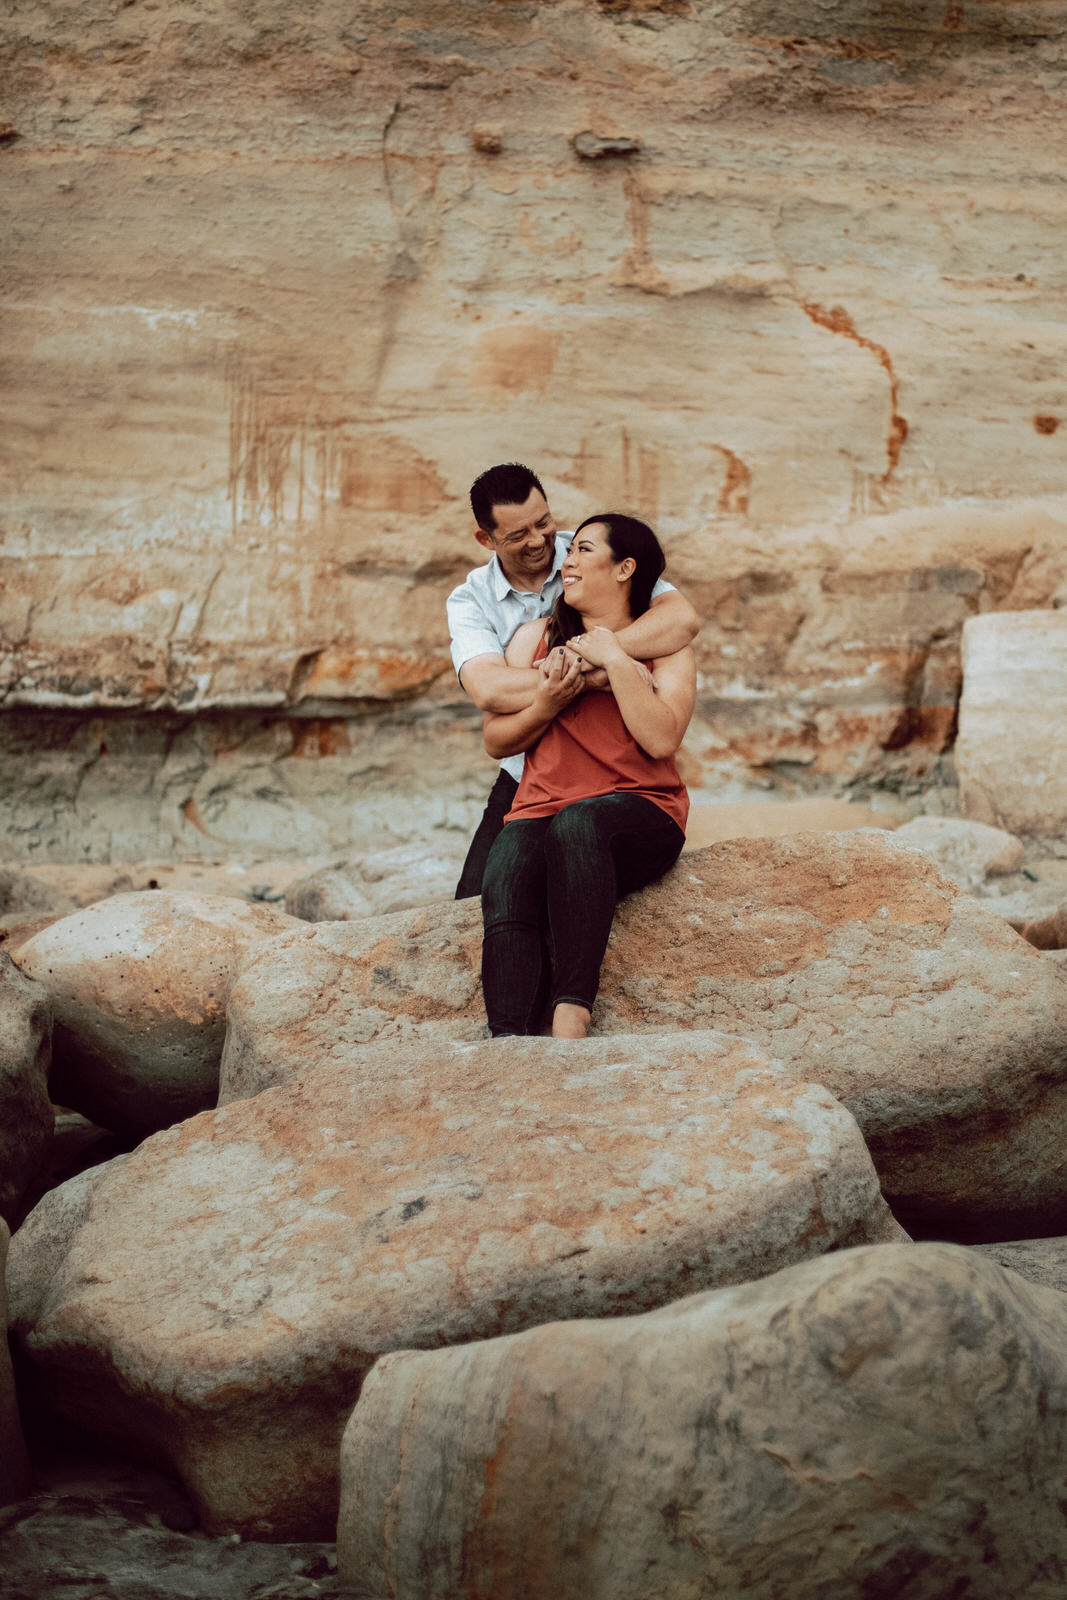 A couple sitting on a rock on the beach hugging